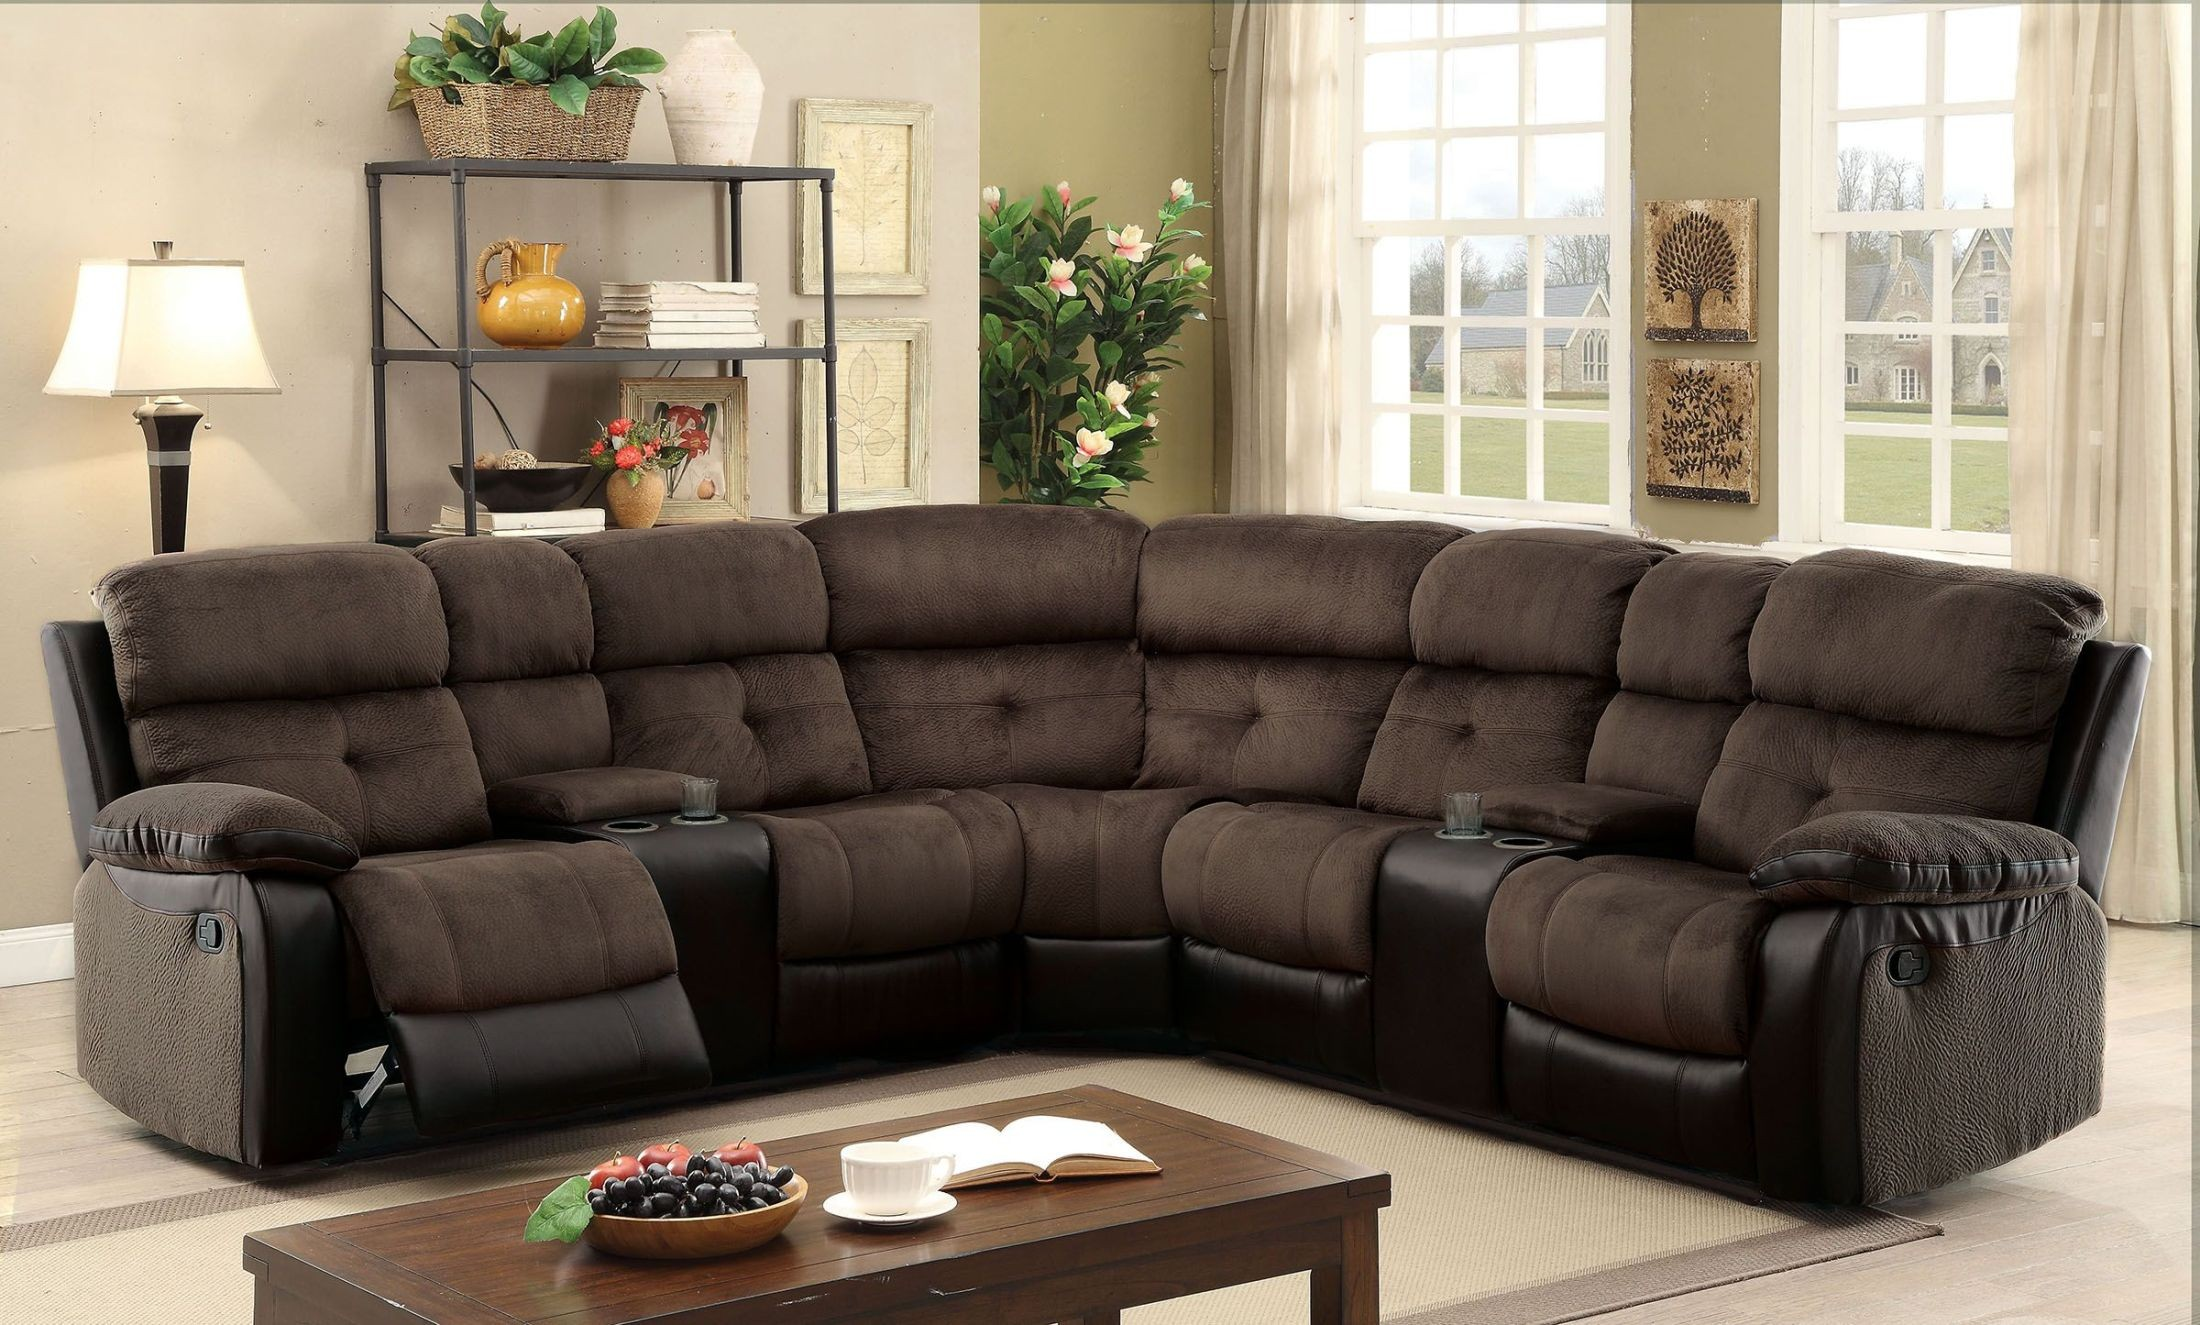 Hadley Ii Espresso Reclining Sectional from Furniture of America